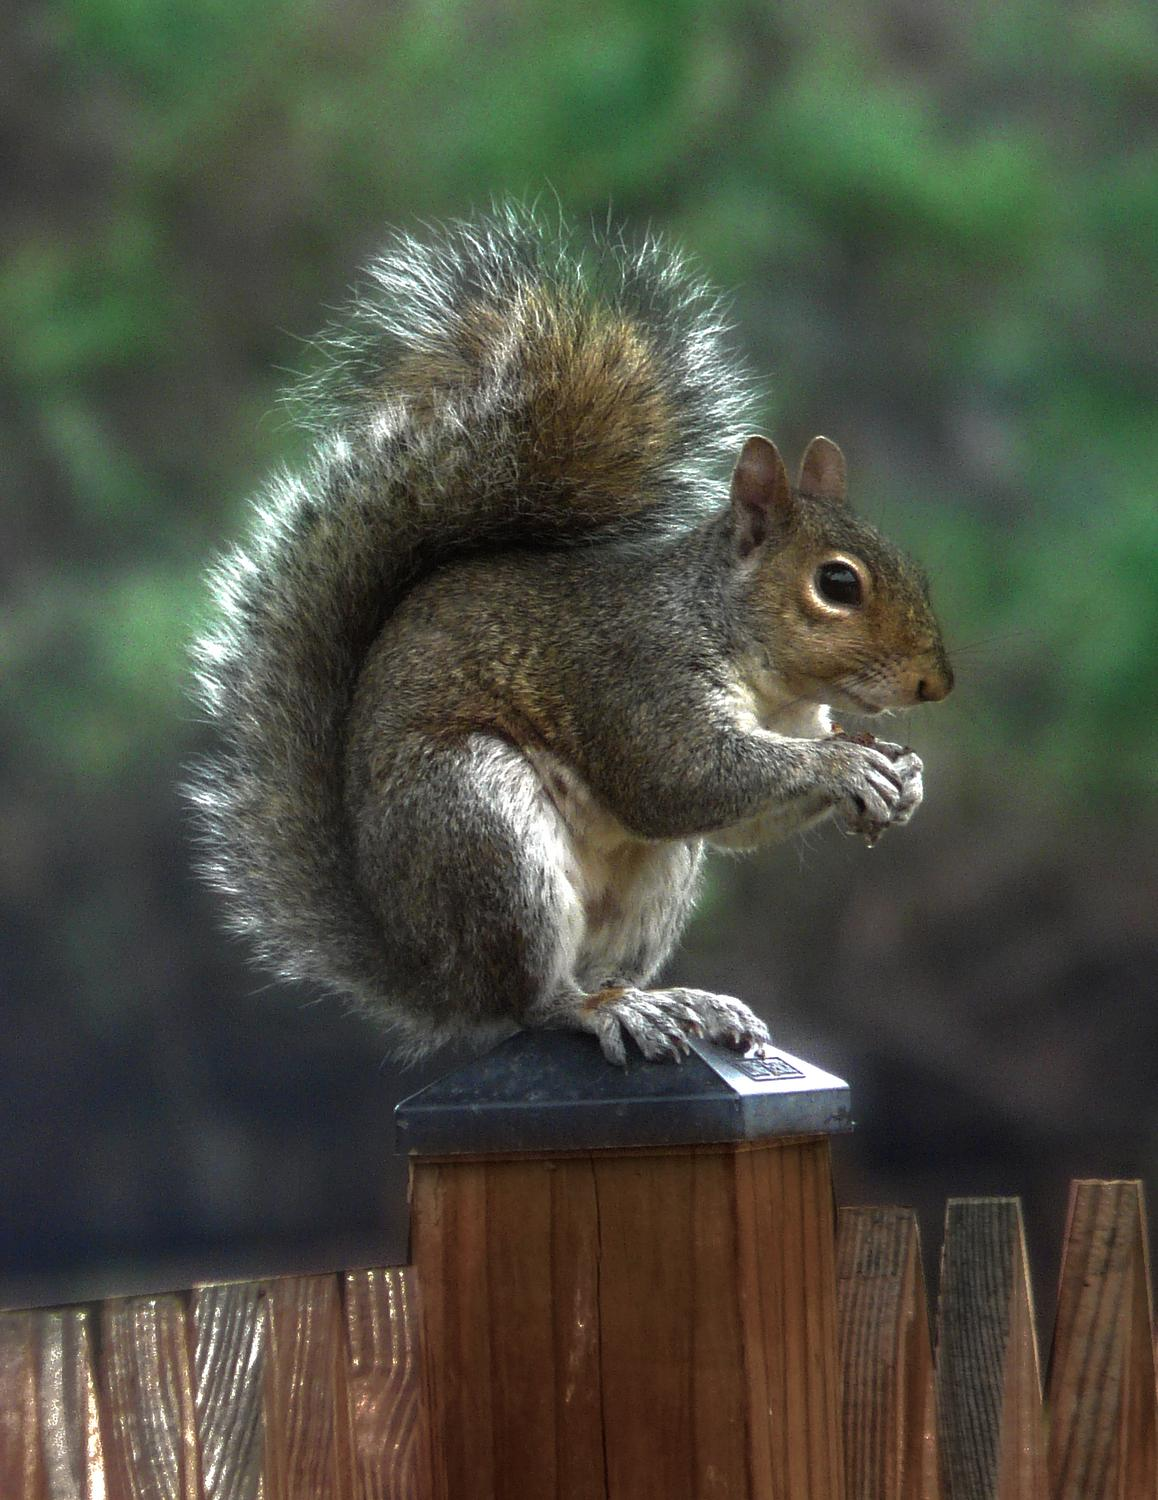 Mr. Squirrel final picture - This is my favorite - Panasonic DMC-FZ18 - Tony Karp, design, art, photography, techno-impressionist, techno-impressionism, aerial photography , drone , drones , dji , mavic pro , video , 3D printing - Books -